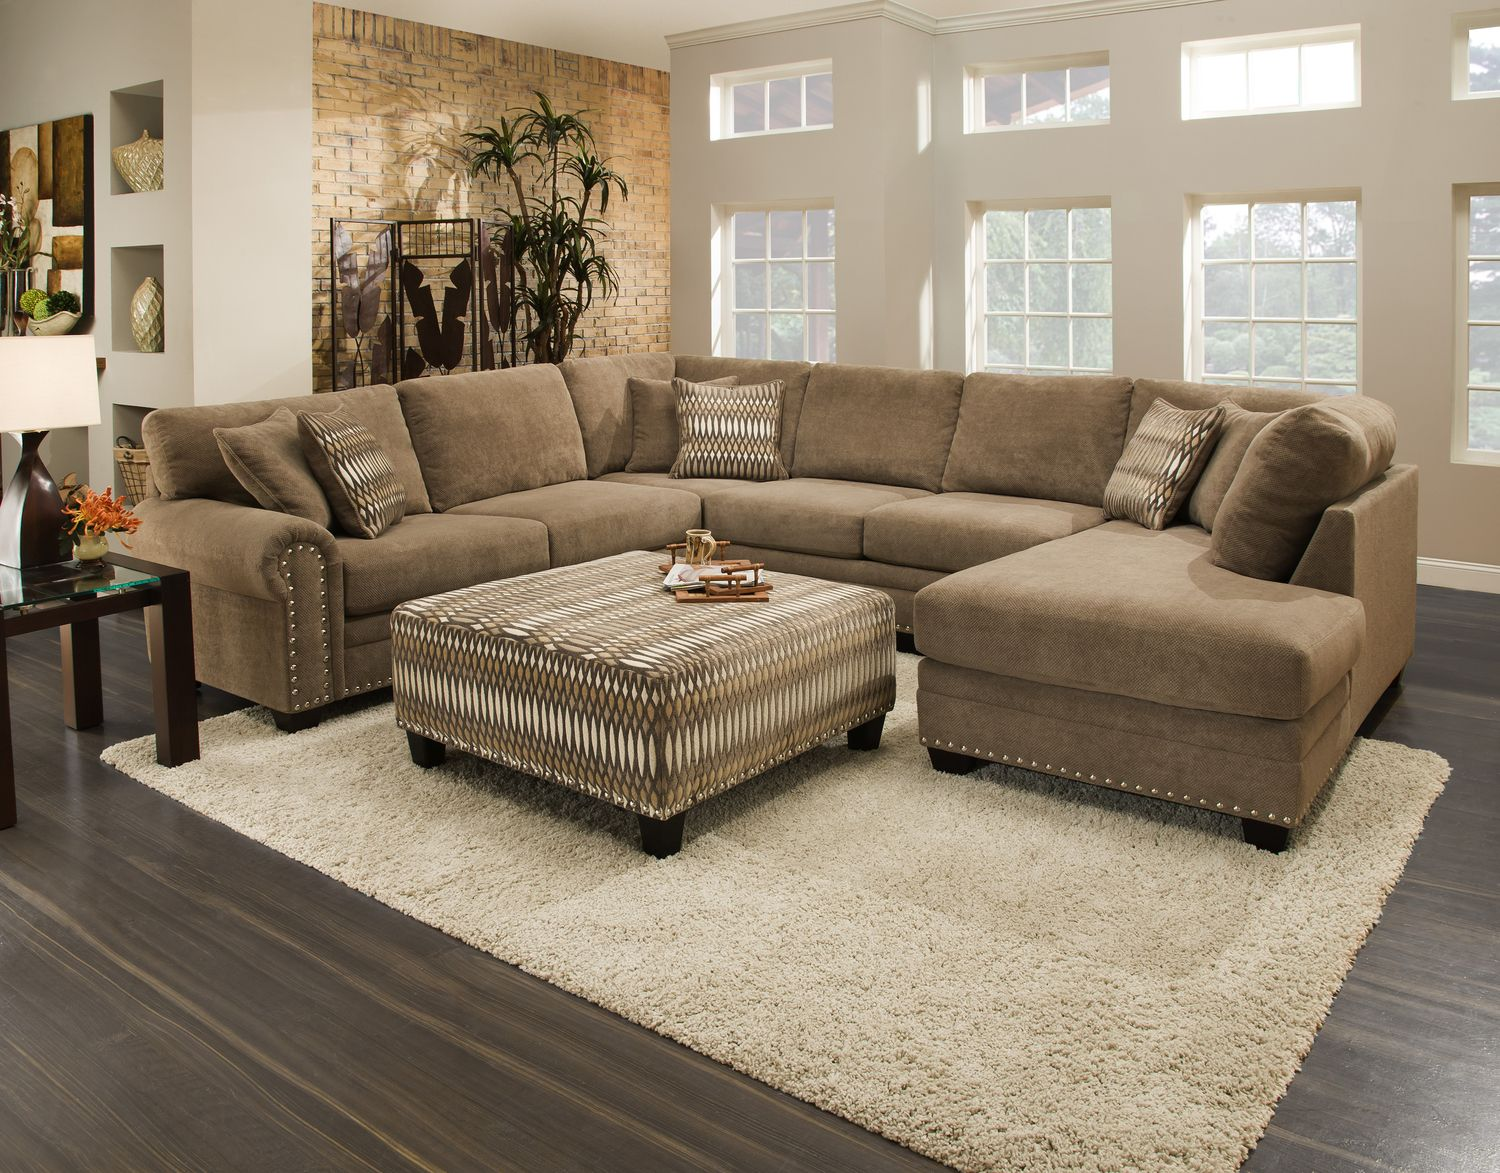 Oates 3 Piece Sectional at HOM Furniture   Furniture Stores in Minneapolis  Minnesota   Midwest. Oates 3 Piece Sectional at HOM Furniture   Furniture Stores in